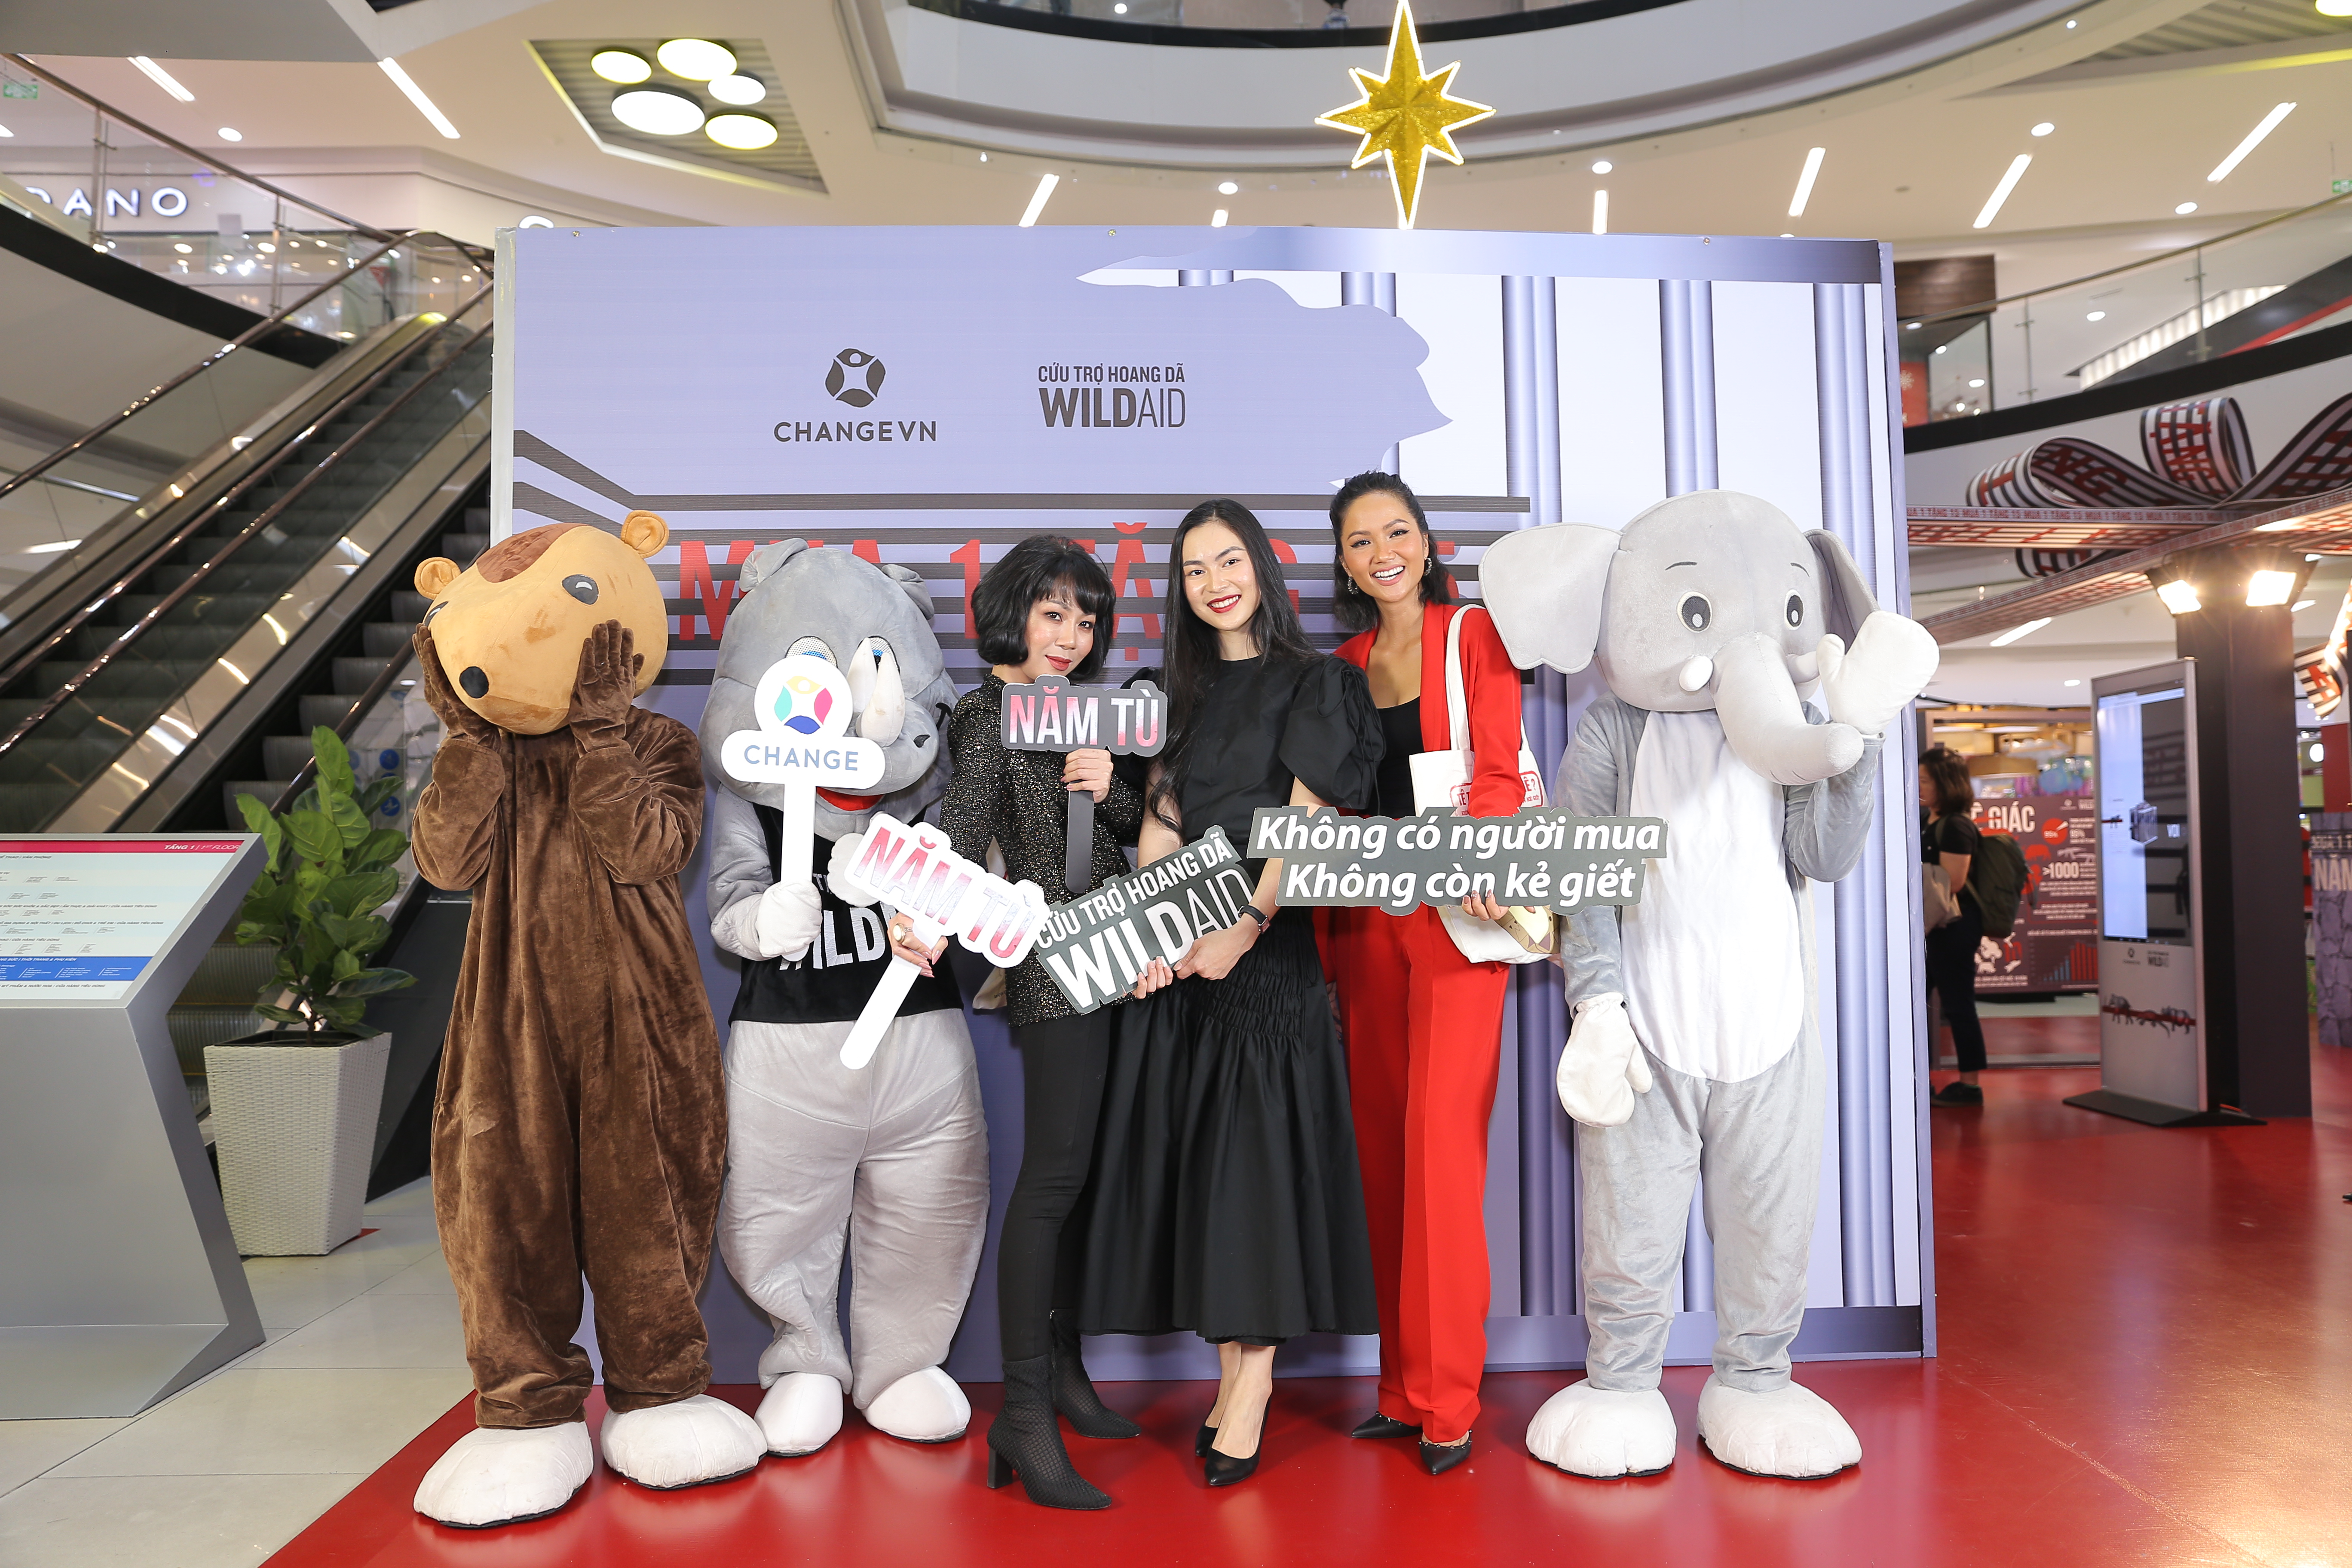 (From left) Journalist Trac Thuy Mieu, organizers, businesswoman Helly Tongm, and Miss Universe Vietnam 2017 H'Hen Nie at an event of the 'Buy 1 Get 15' campaign against illegal wildlife trafficking in Ho Chi Minh City on December 30, 2019. Photo: CHANGE